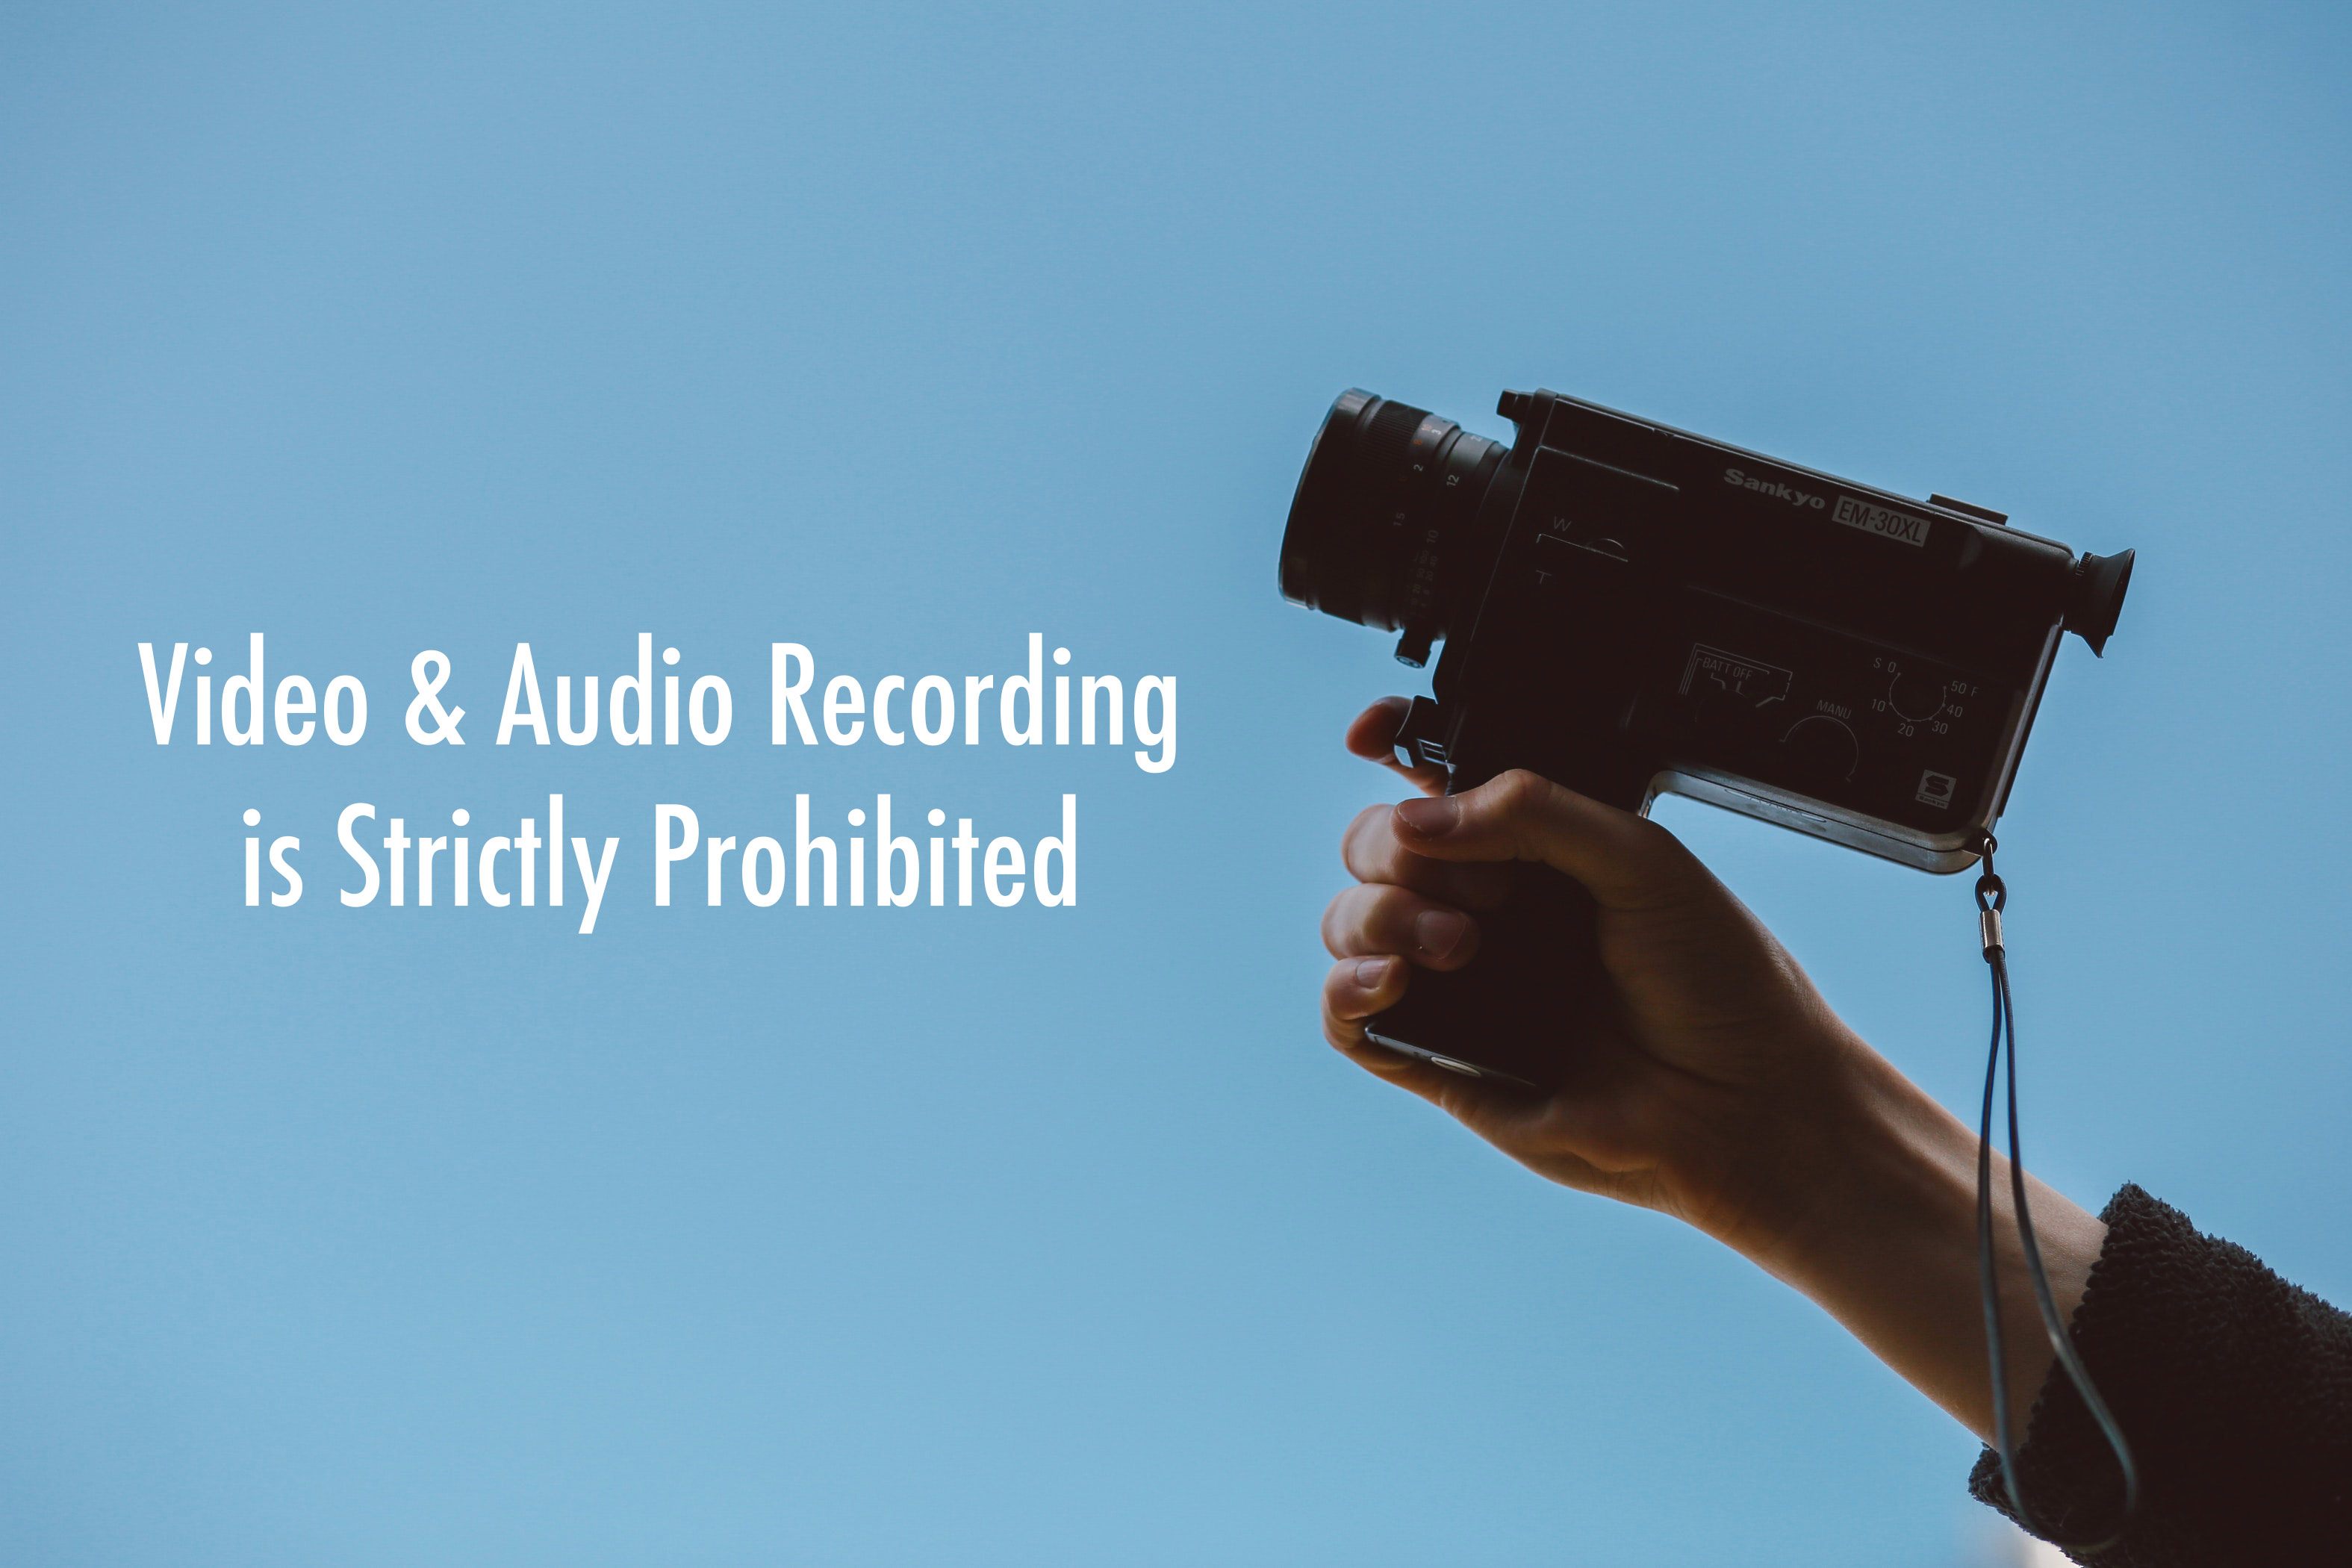 Video & Audio Recording Prohibited